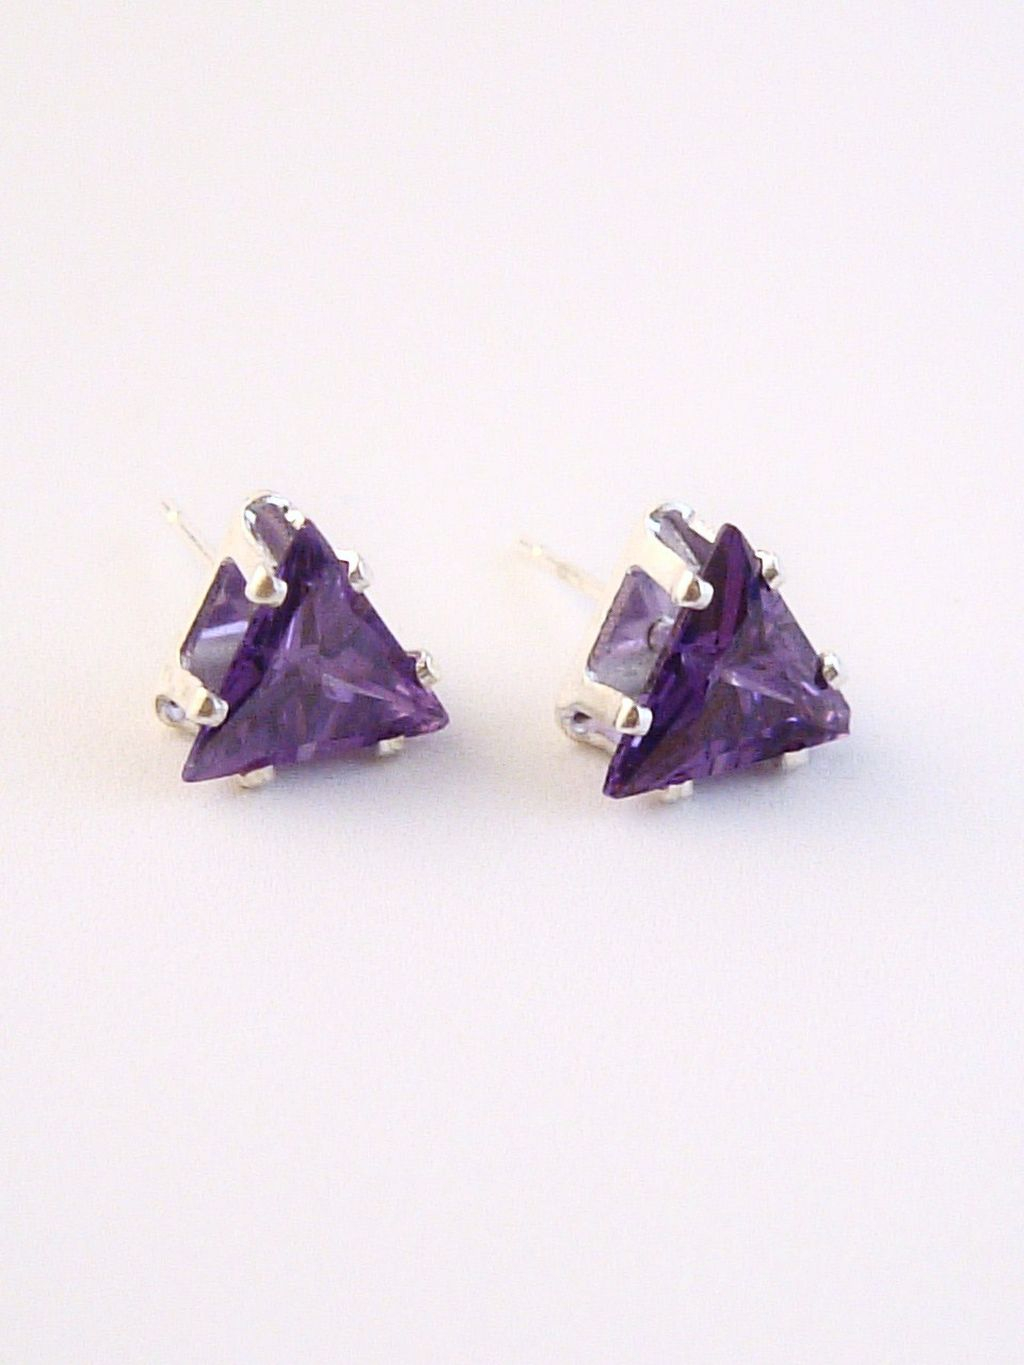 Amethyst Triangle Cut Silver Stud Earrings Genuine CZ Cubic Zirconia